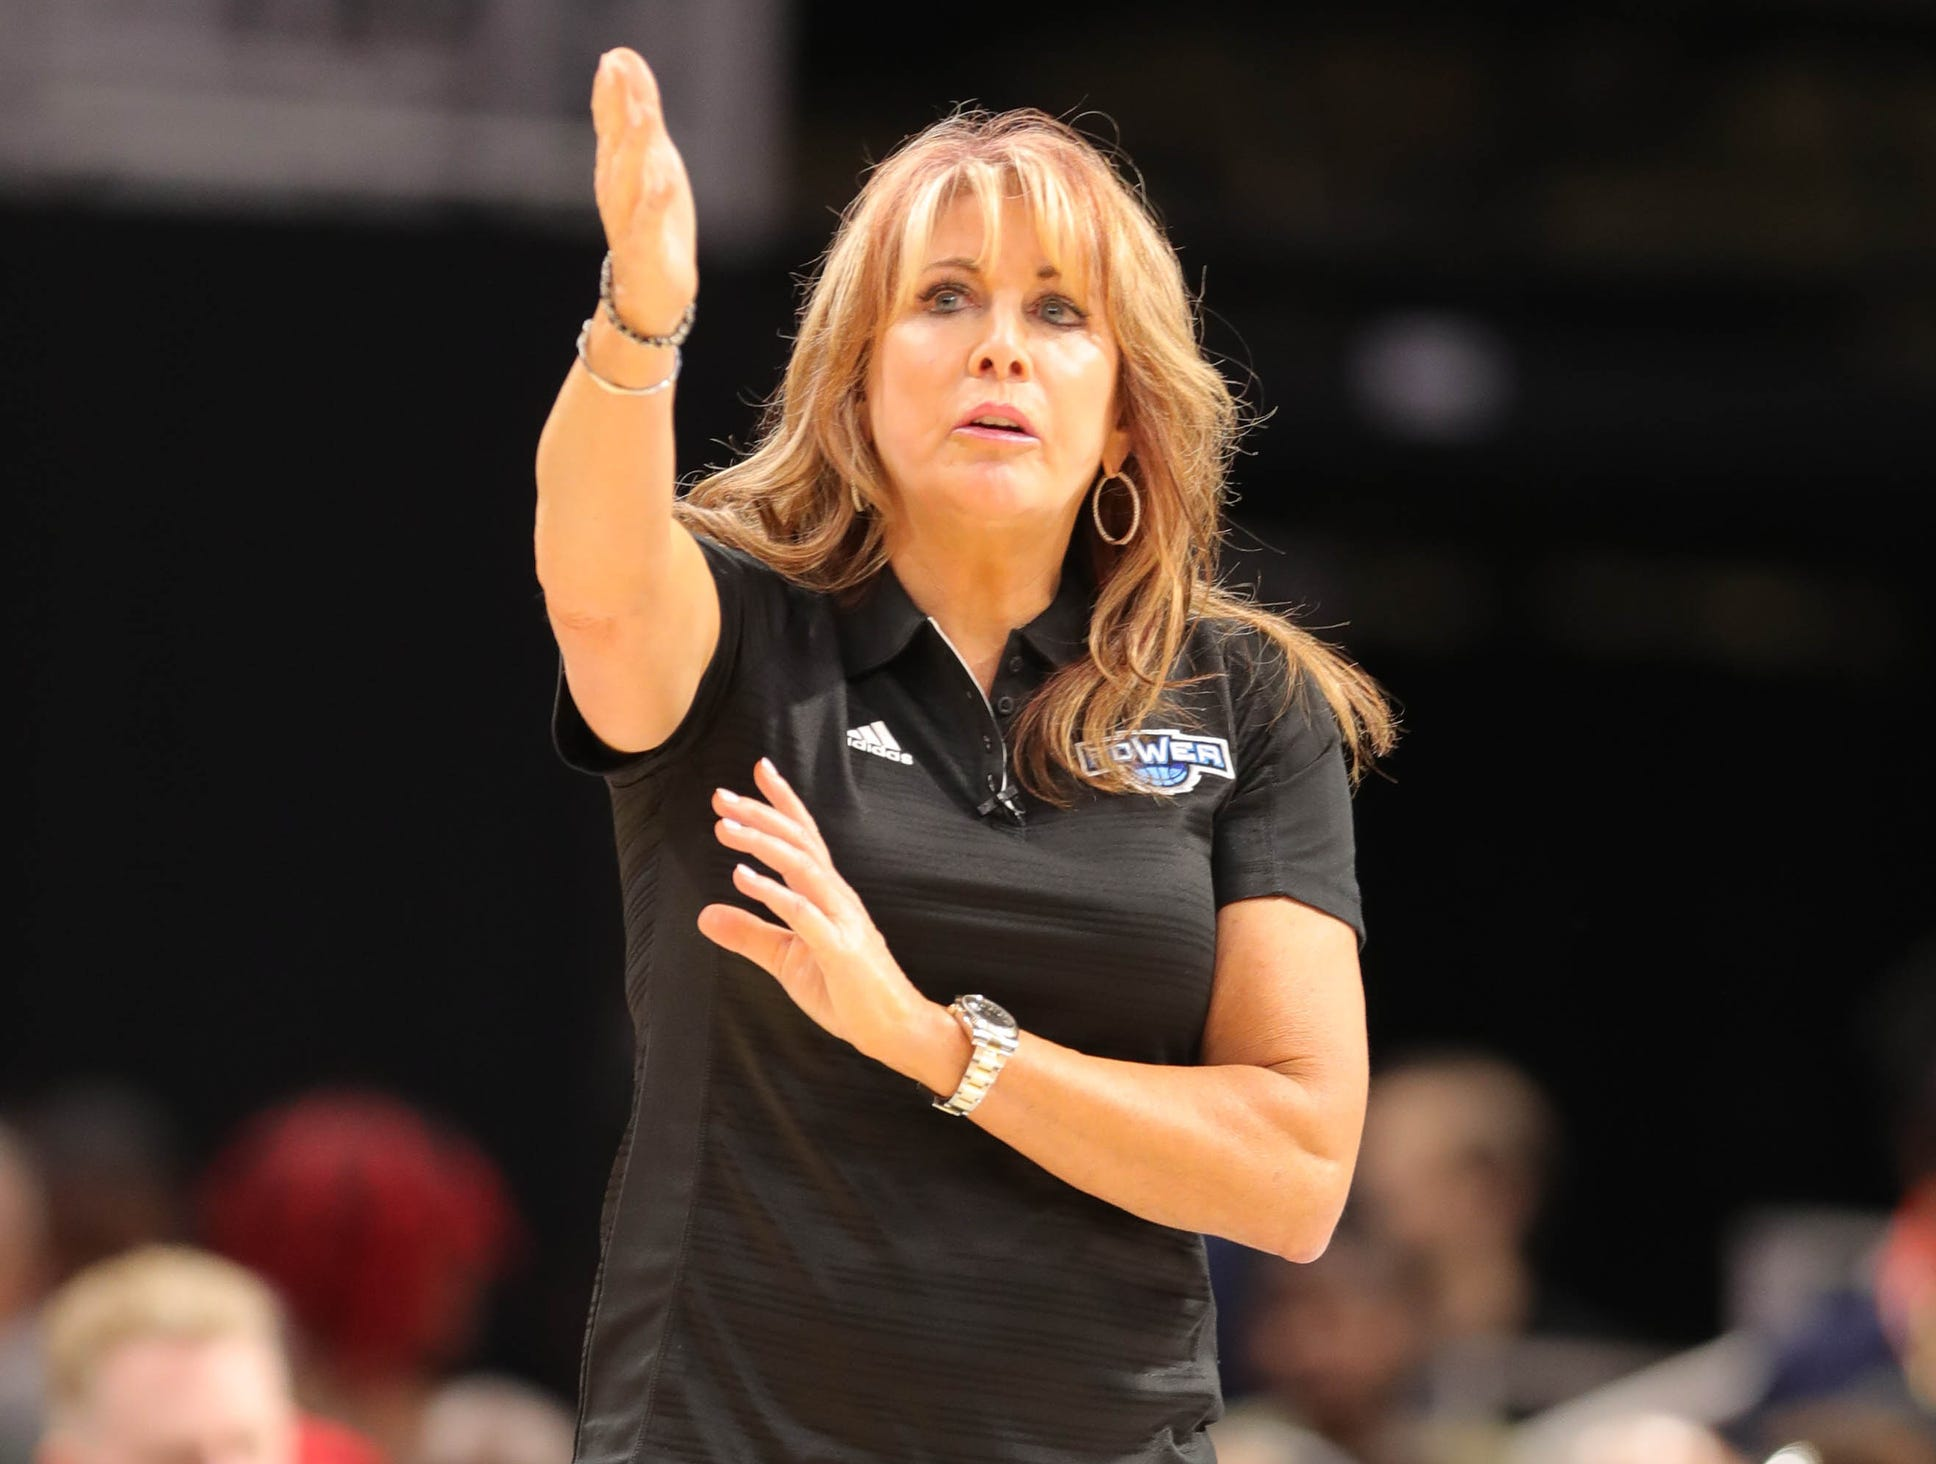 Power's head coach Nancy Lieberman on the bench during BIG3 action on Friday, July 13, 2018 at Little Caesars Arena in Detroit.